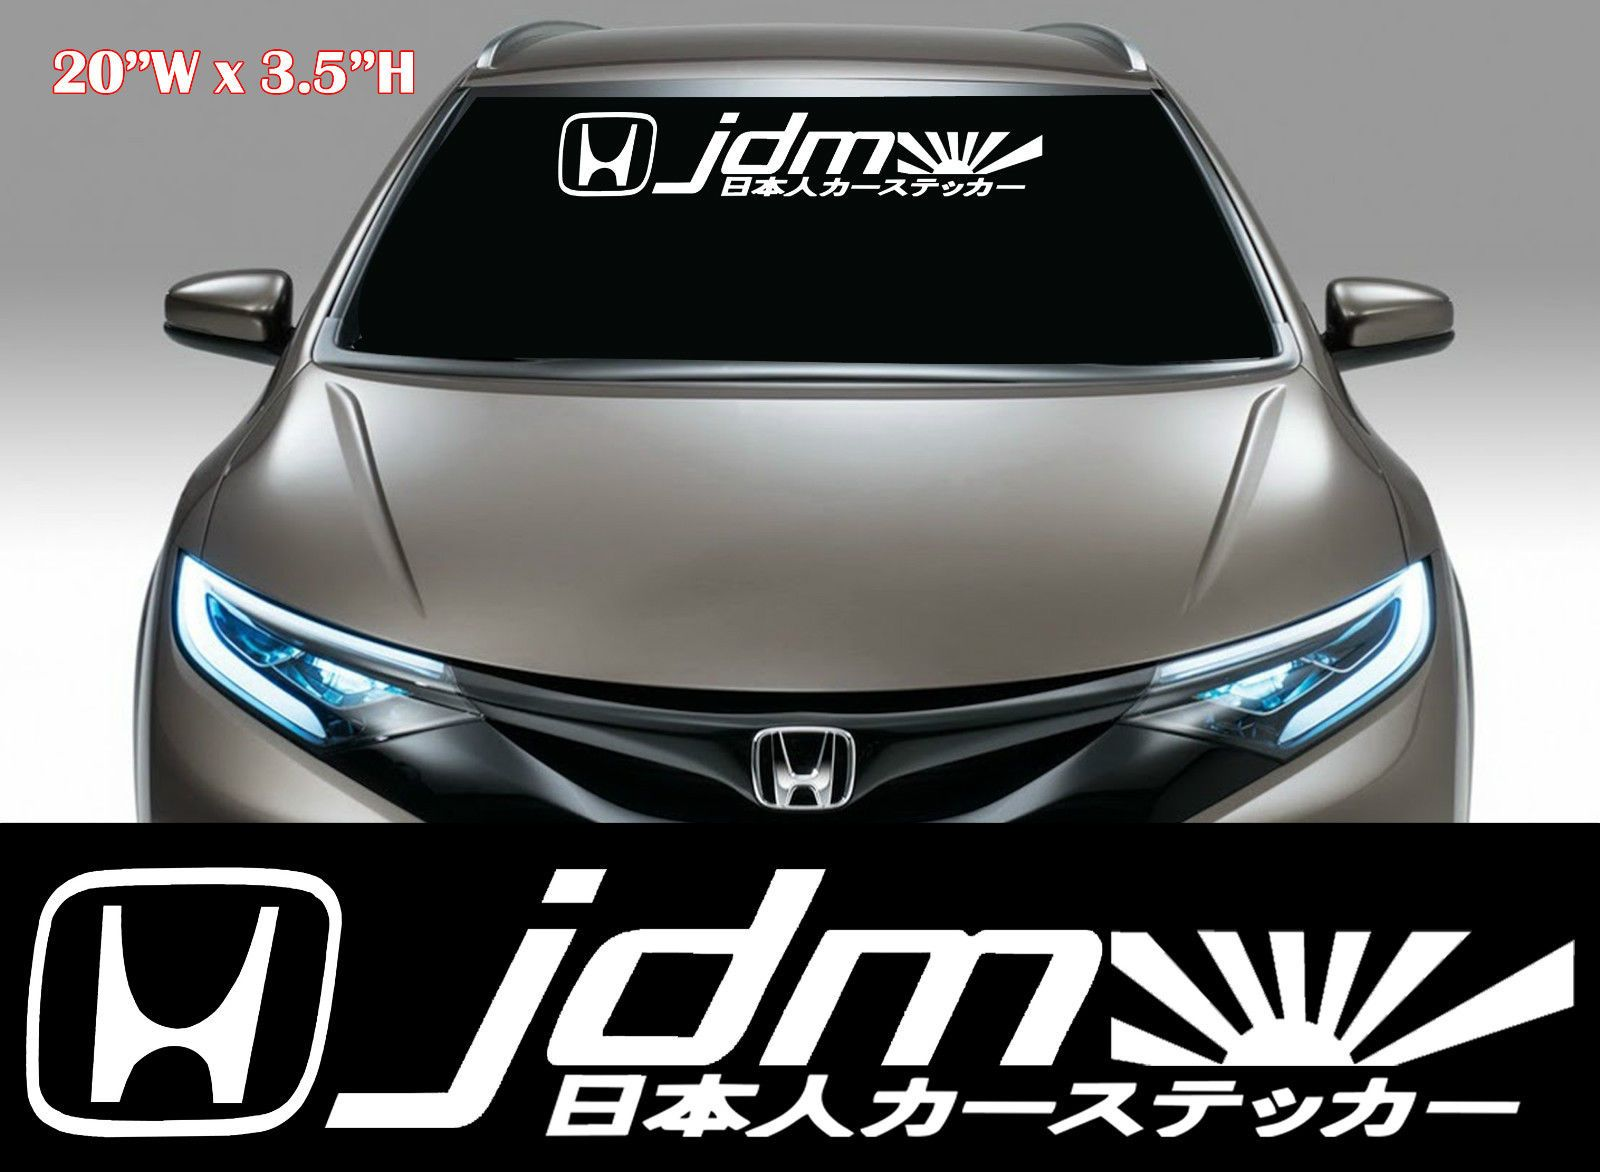 1x Jdm Kanji Racing Decal Sticker Mugen Windshield Decal 104 Ebay Jdm Stickers Jdm Decals Stickers